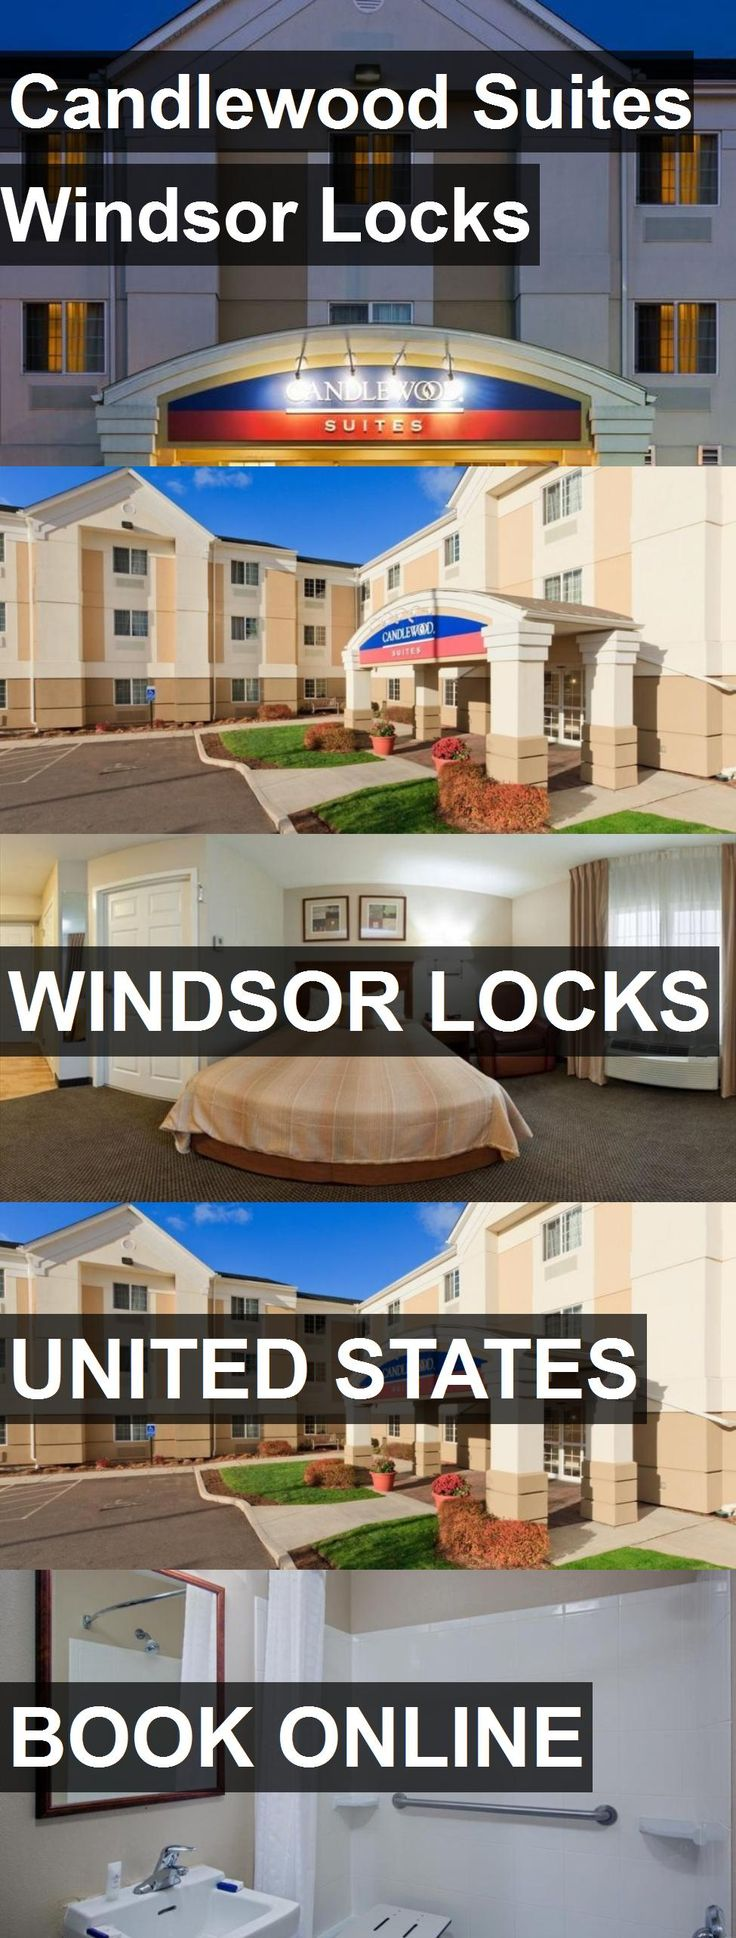 Hotel Candlewood Suites Windsor Locks in Windsor Locks, United States. For more information, photos, reviews and best prices please follow the link. #UnitedStates #WindsorLocks #travel #vacation #hotel